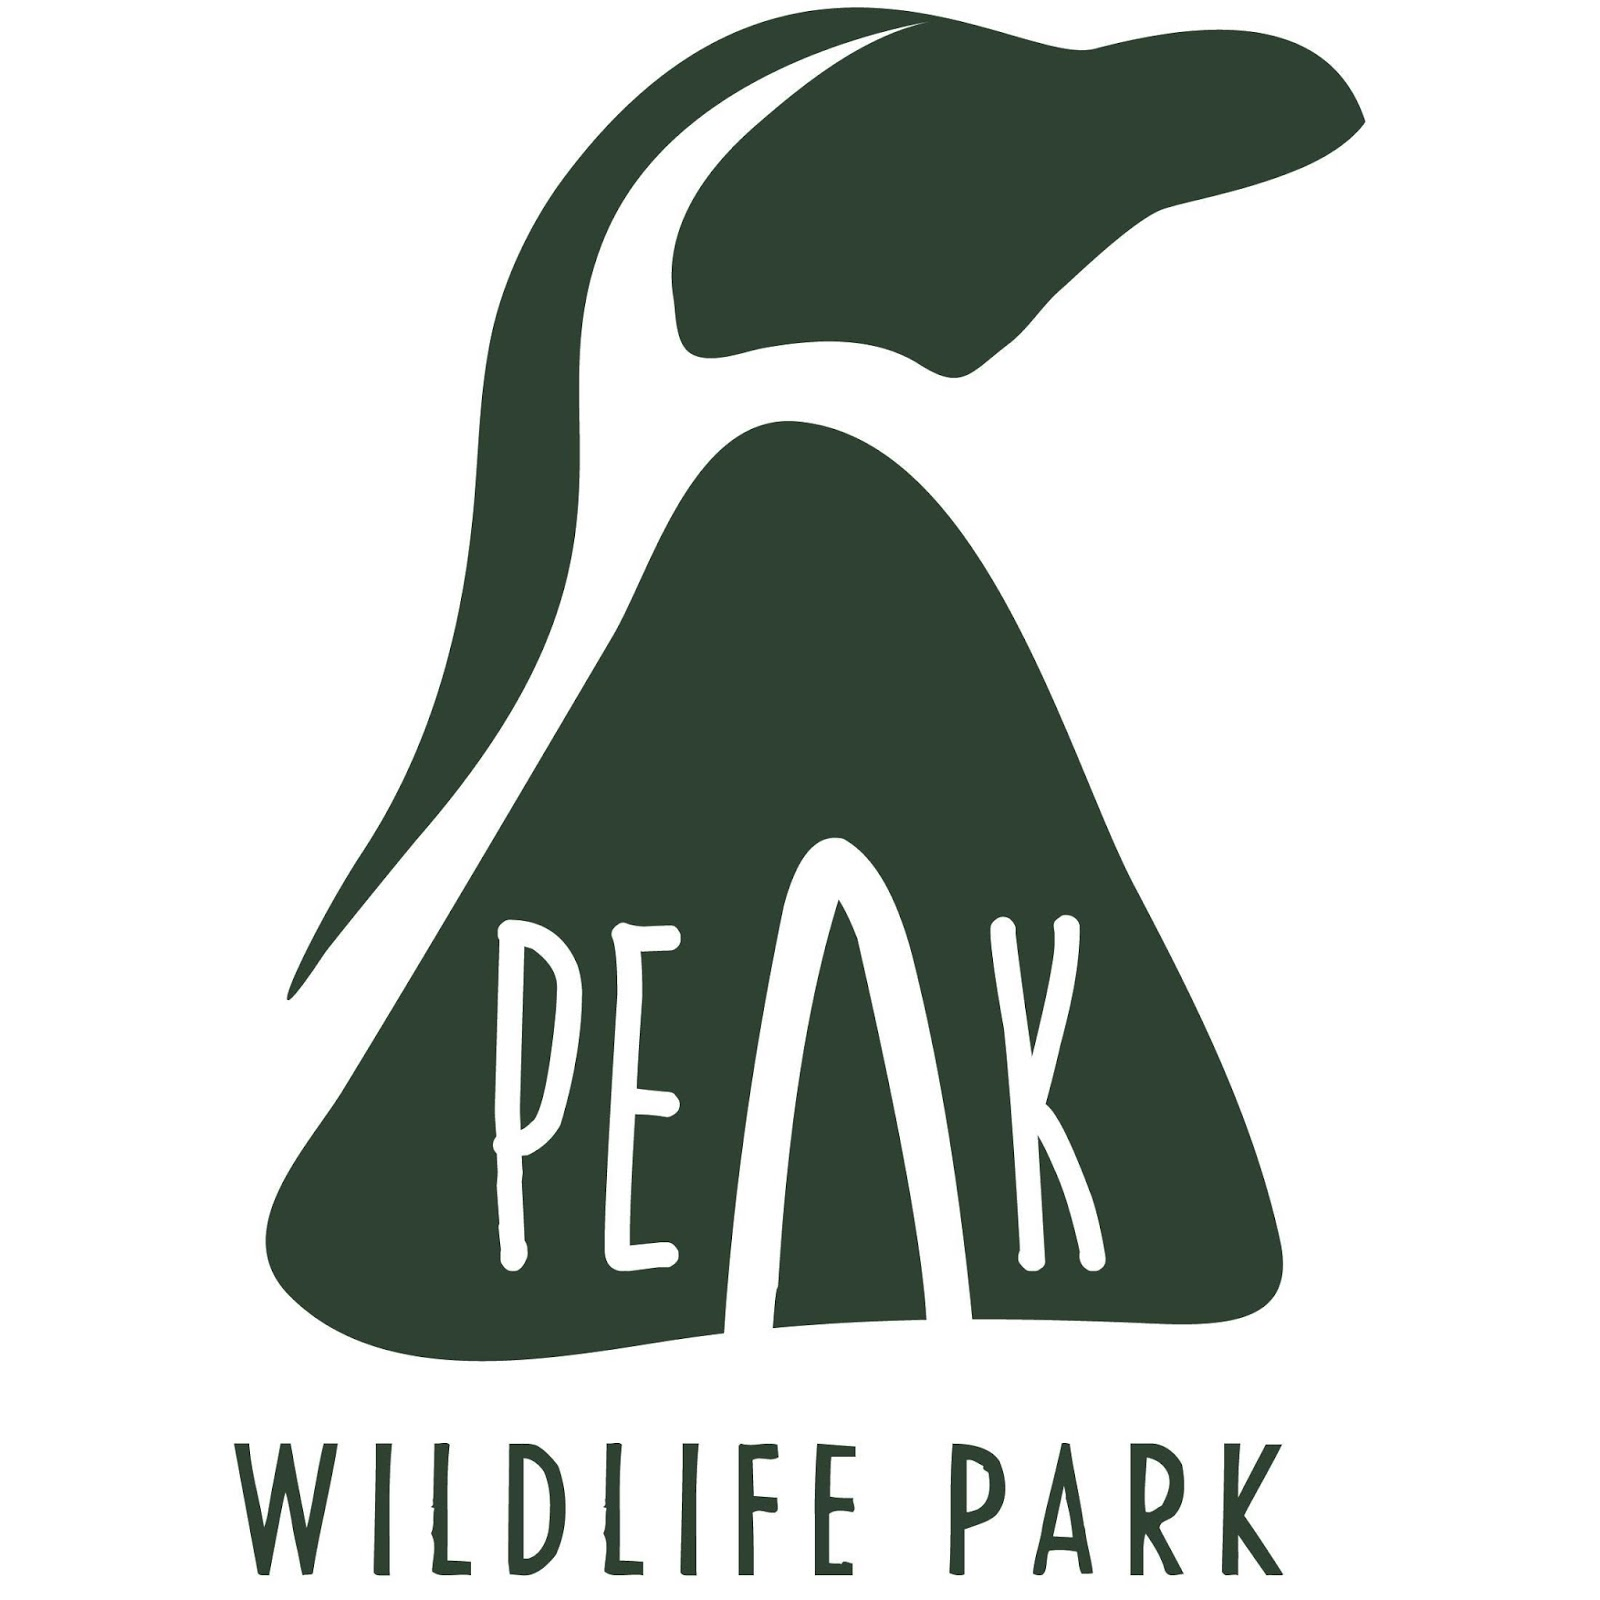 zoo jobs  seasonal keeper  u2013 peak wildlife park